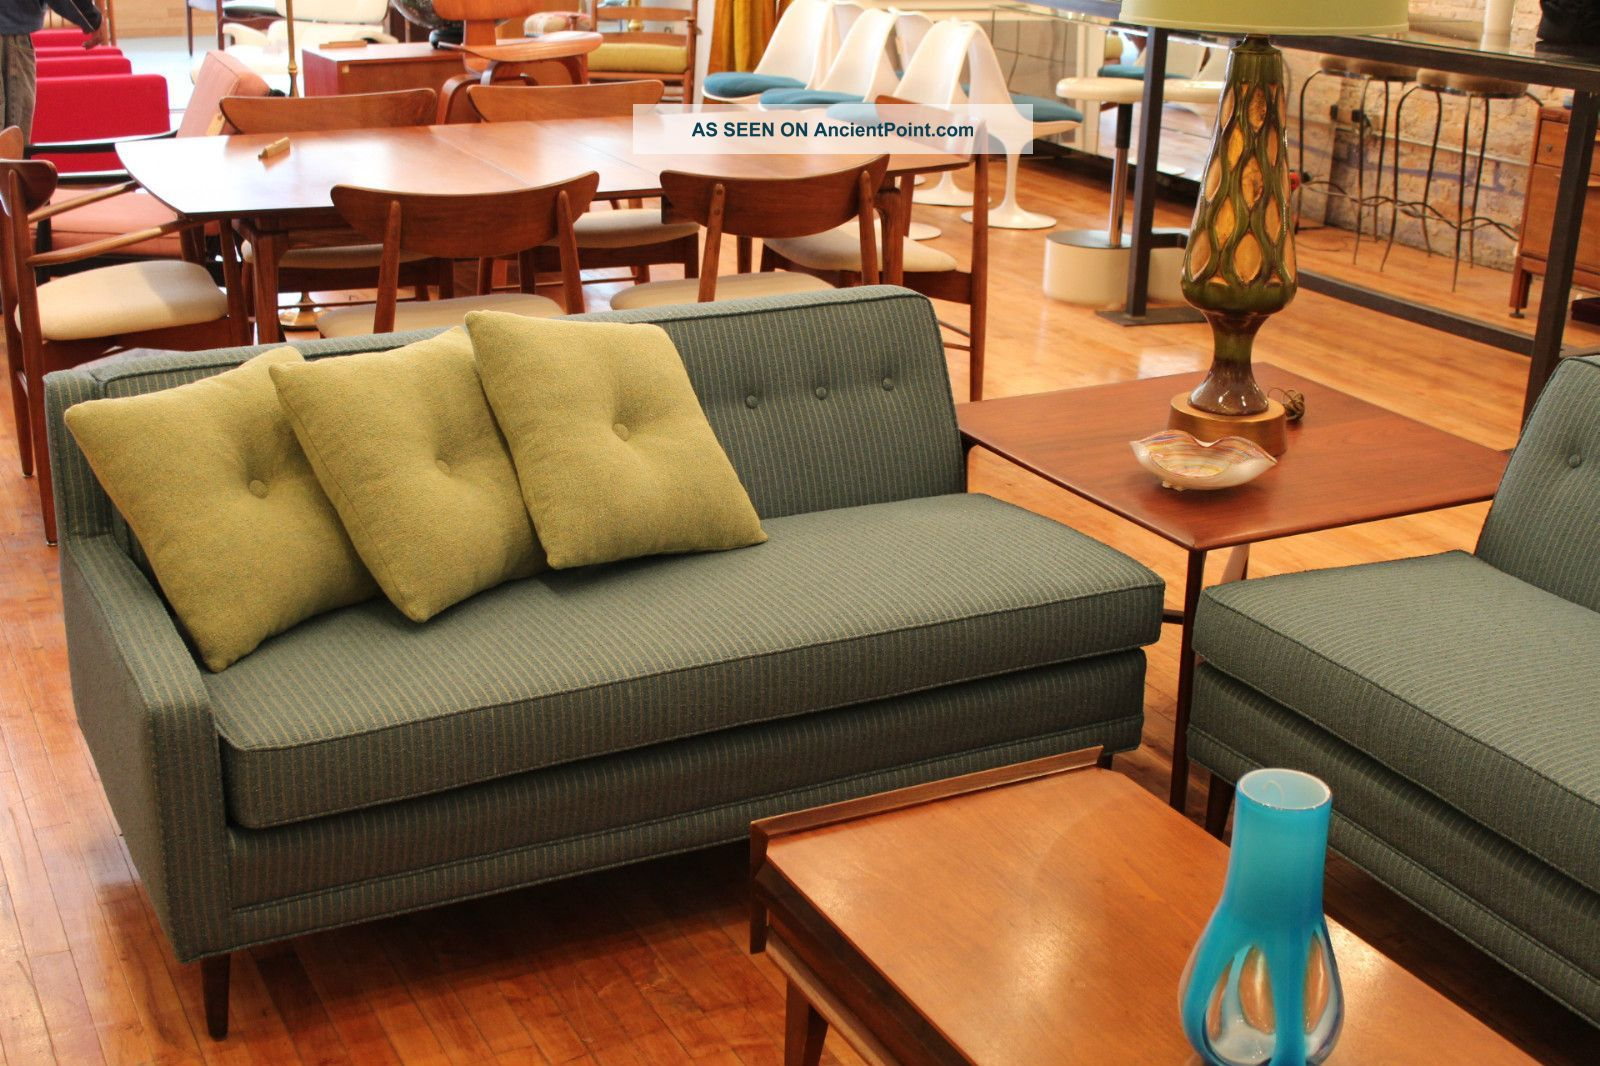 Simple Retro Sectional Sofa 55 In Conversation Sofa Sectional with Retro Sectional Sofa : retro sectional couch - Sectionals, Sofas & Couches